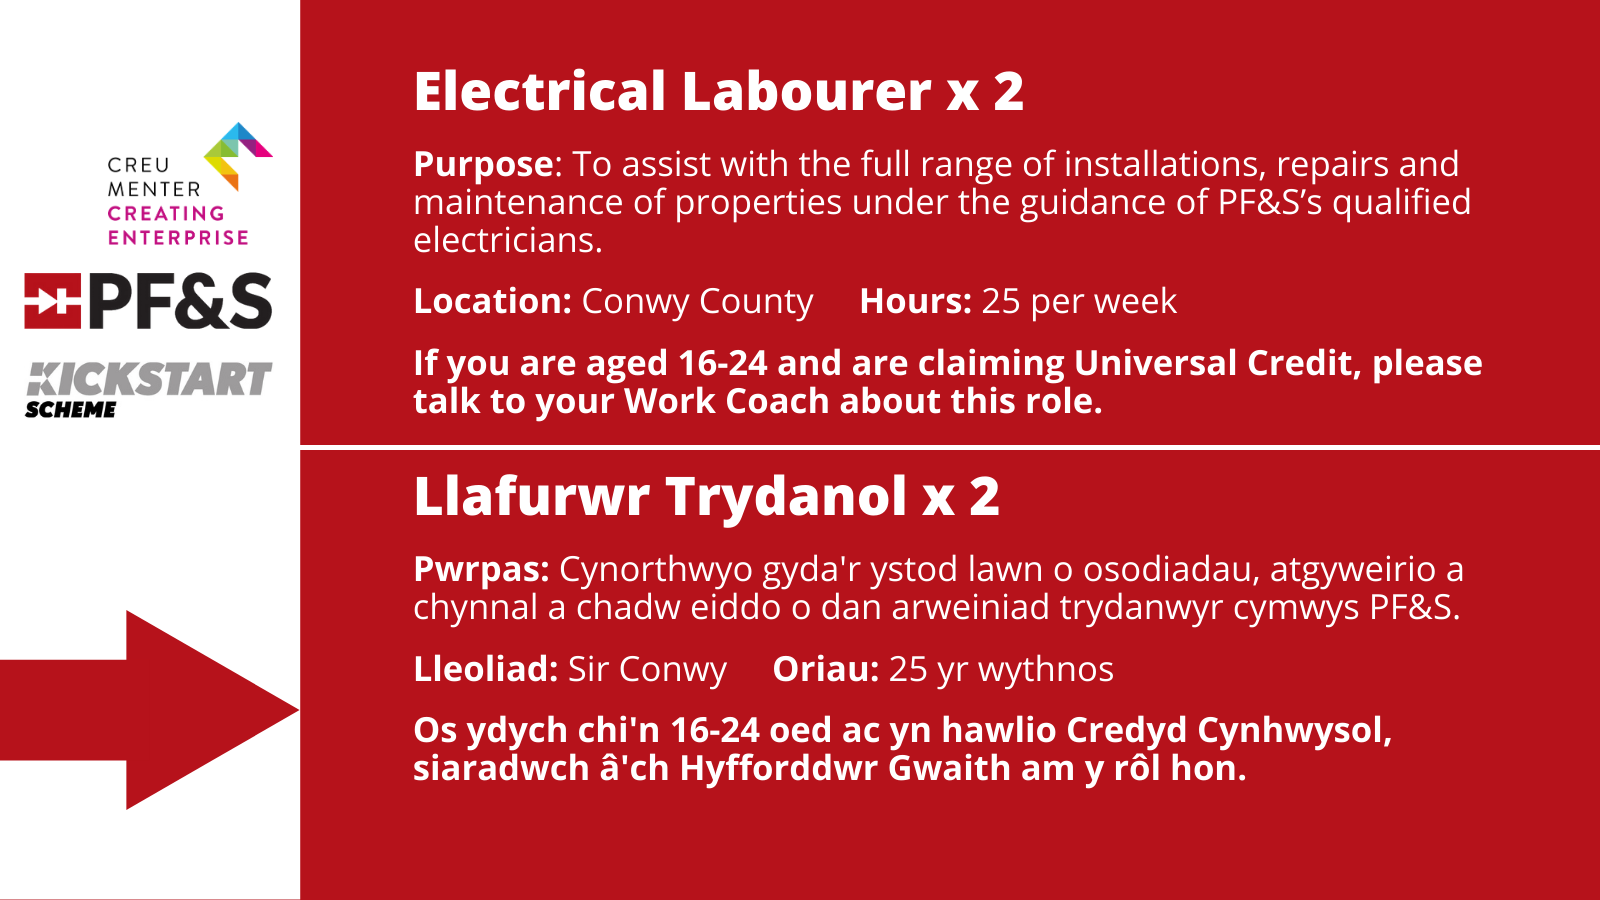 Electrical Labourer x 2